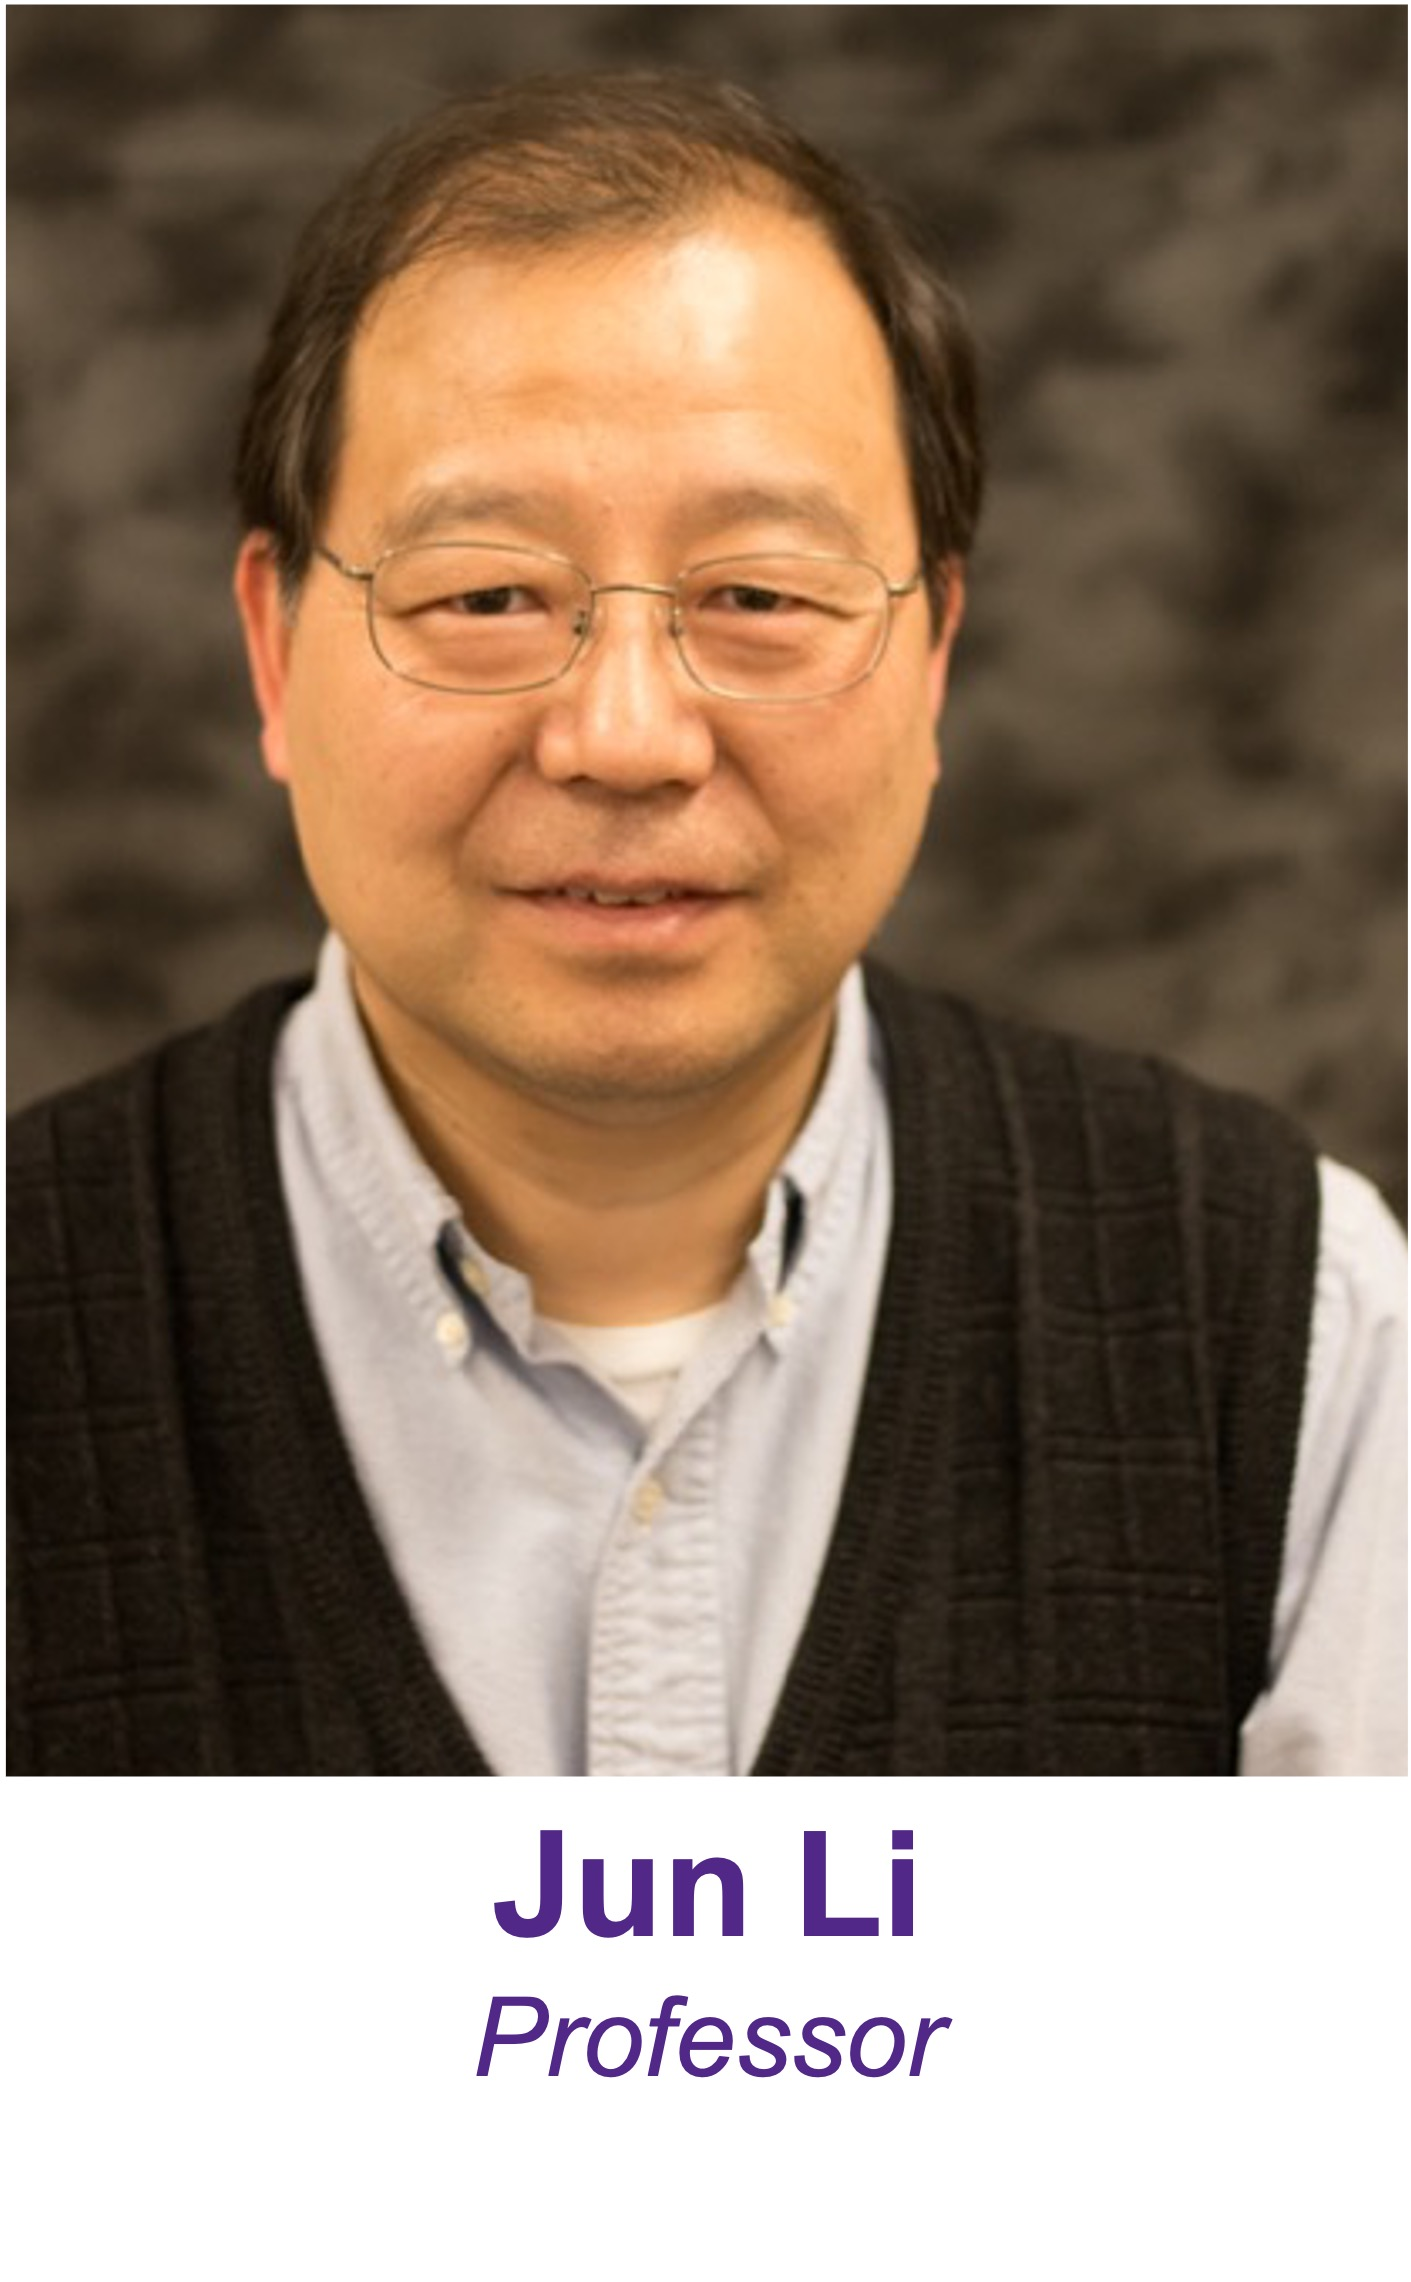 Professor Jun Li